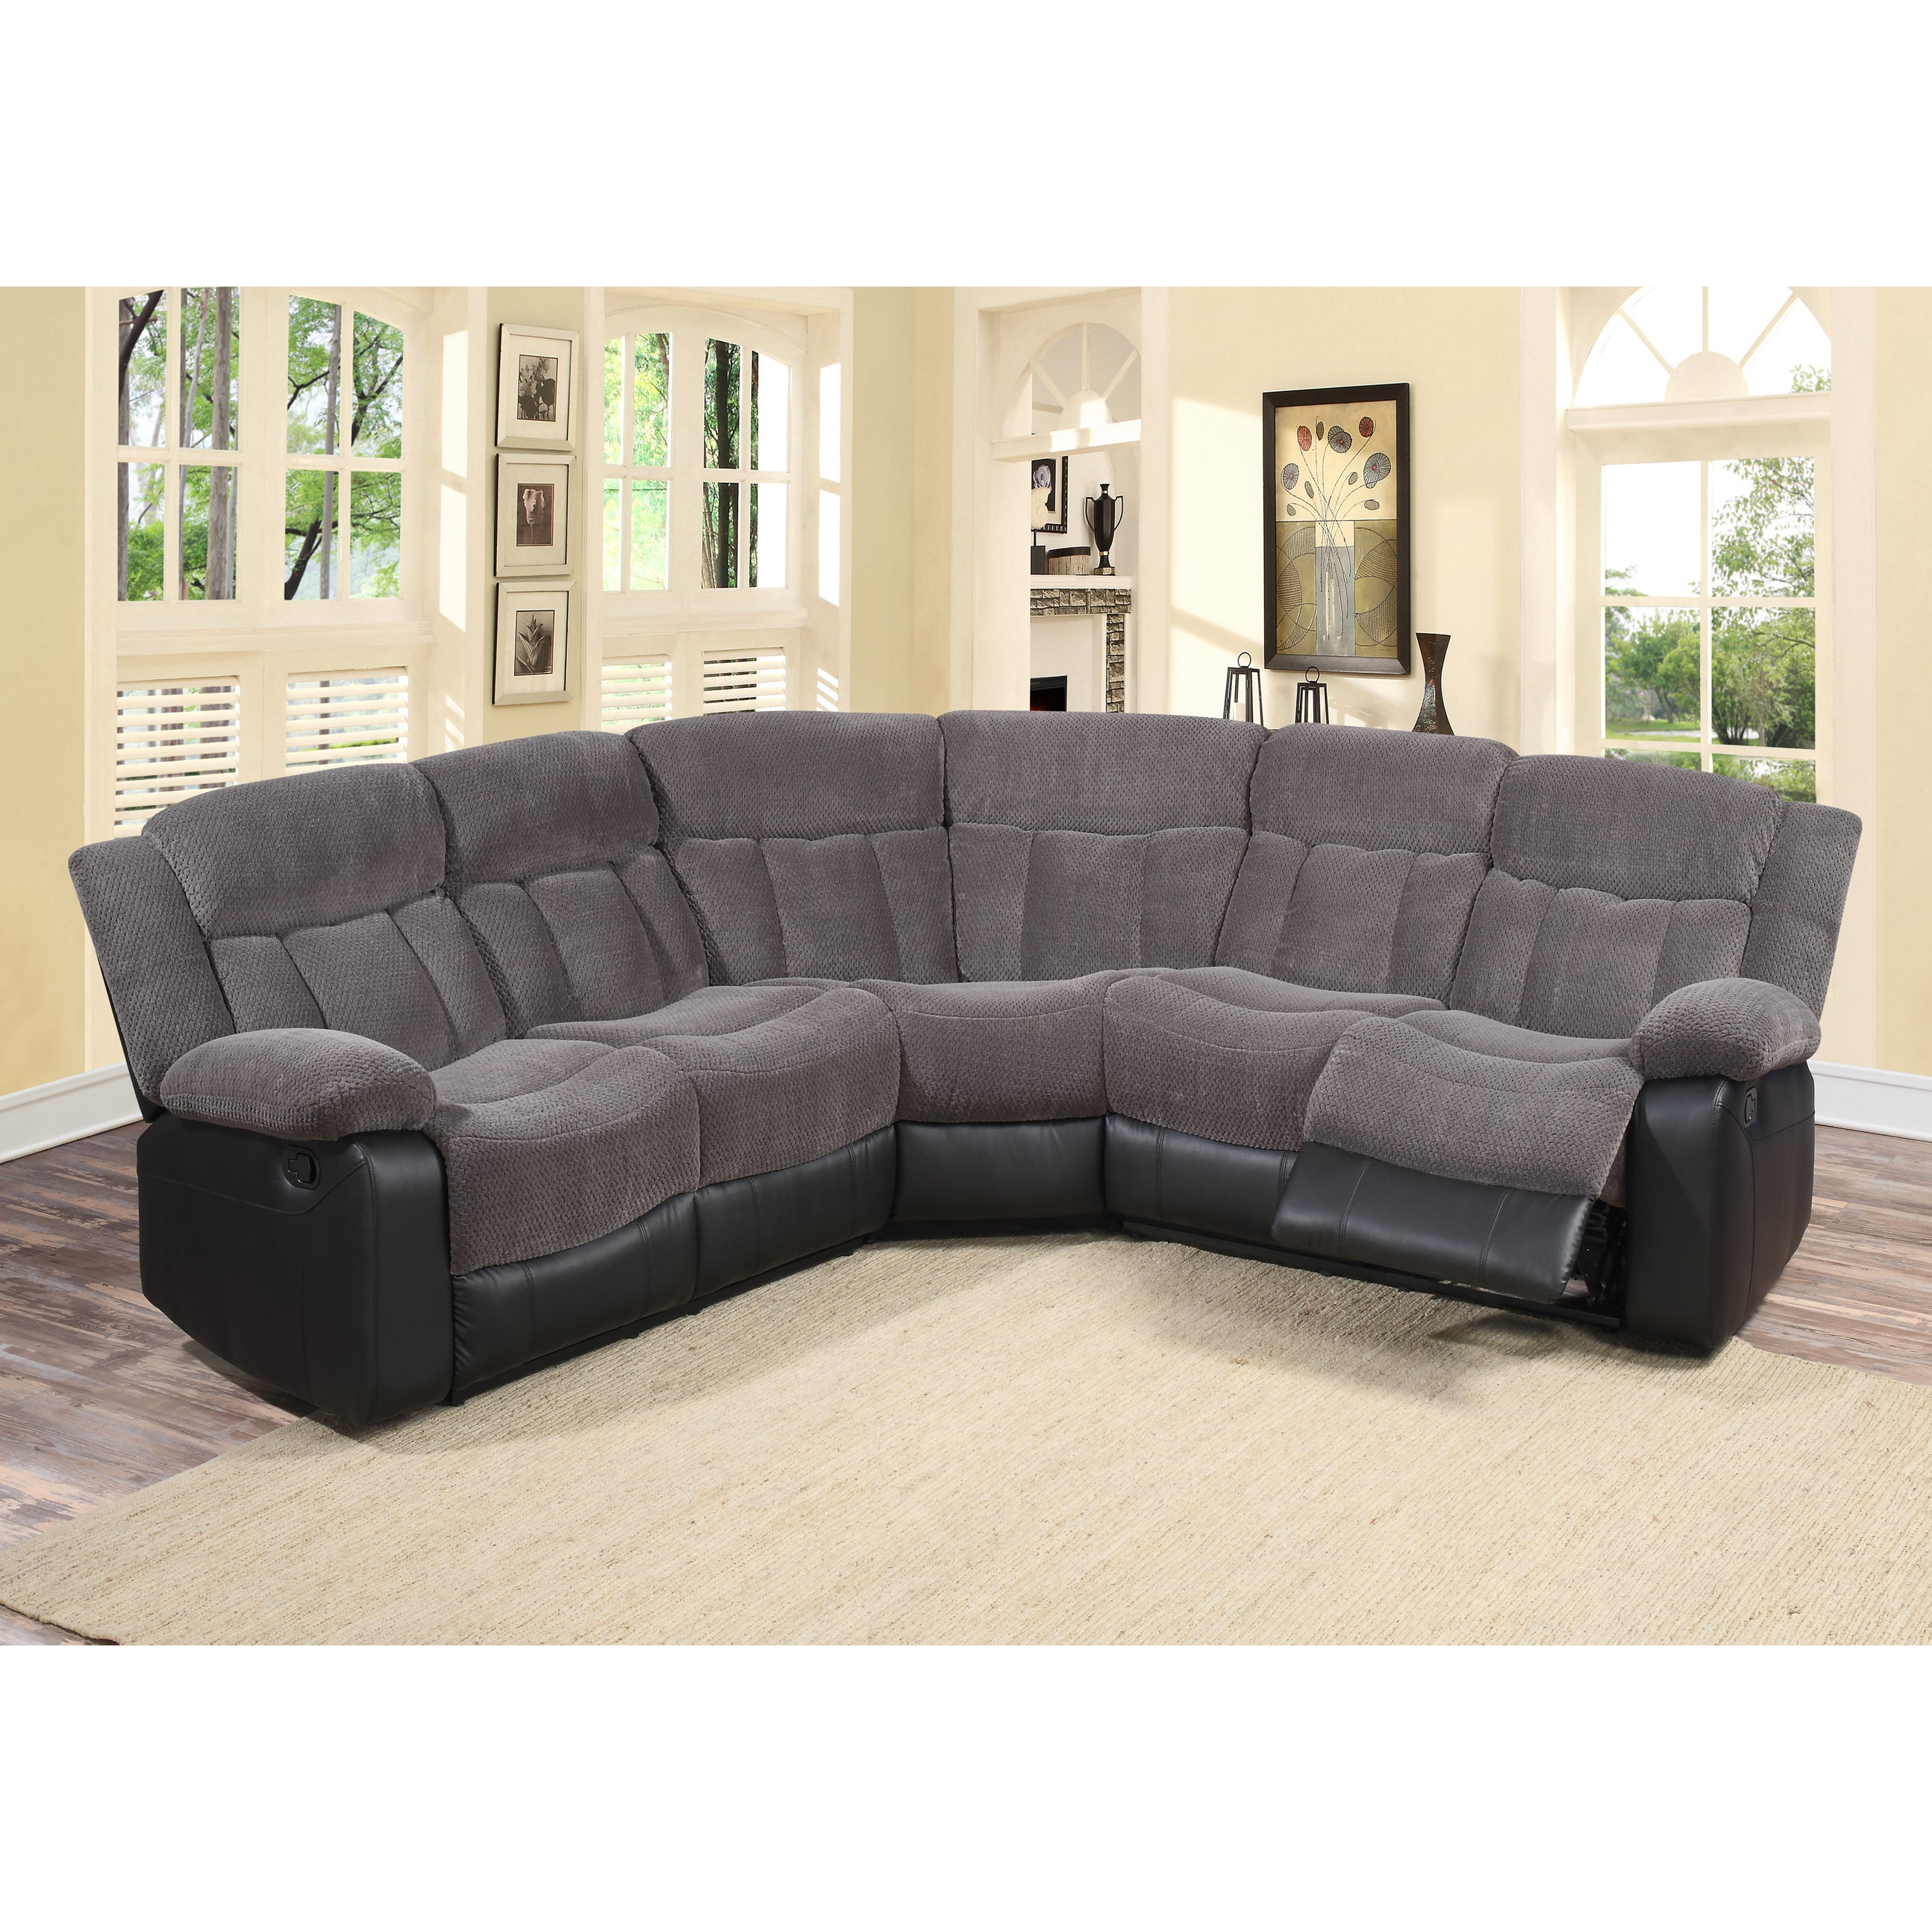 living sets ashford sofa gray livings piece room furniture of sectional landing pc